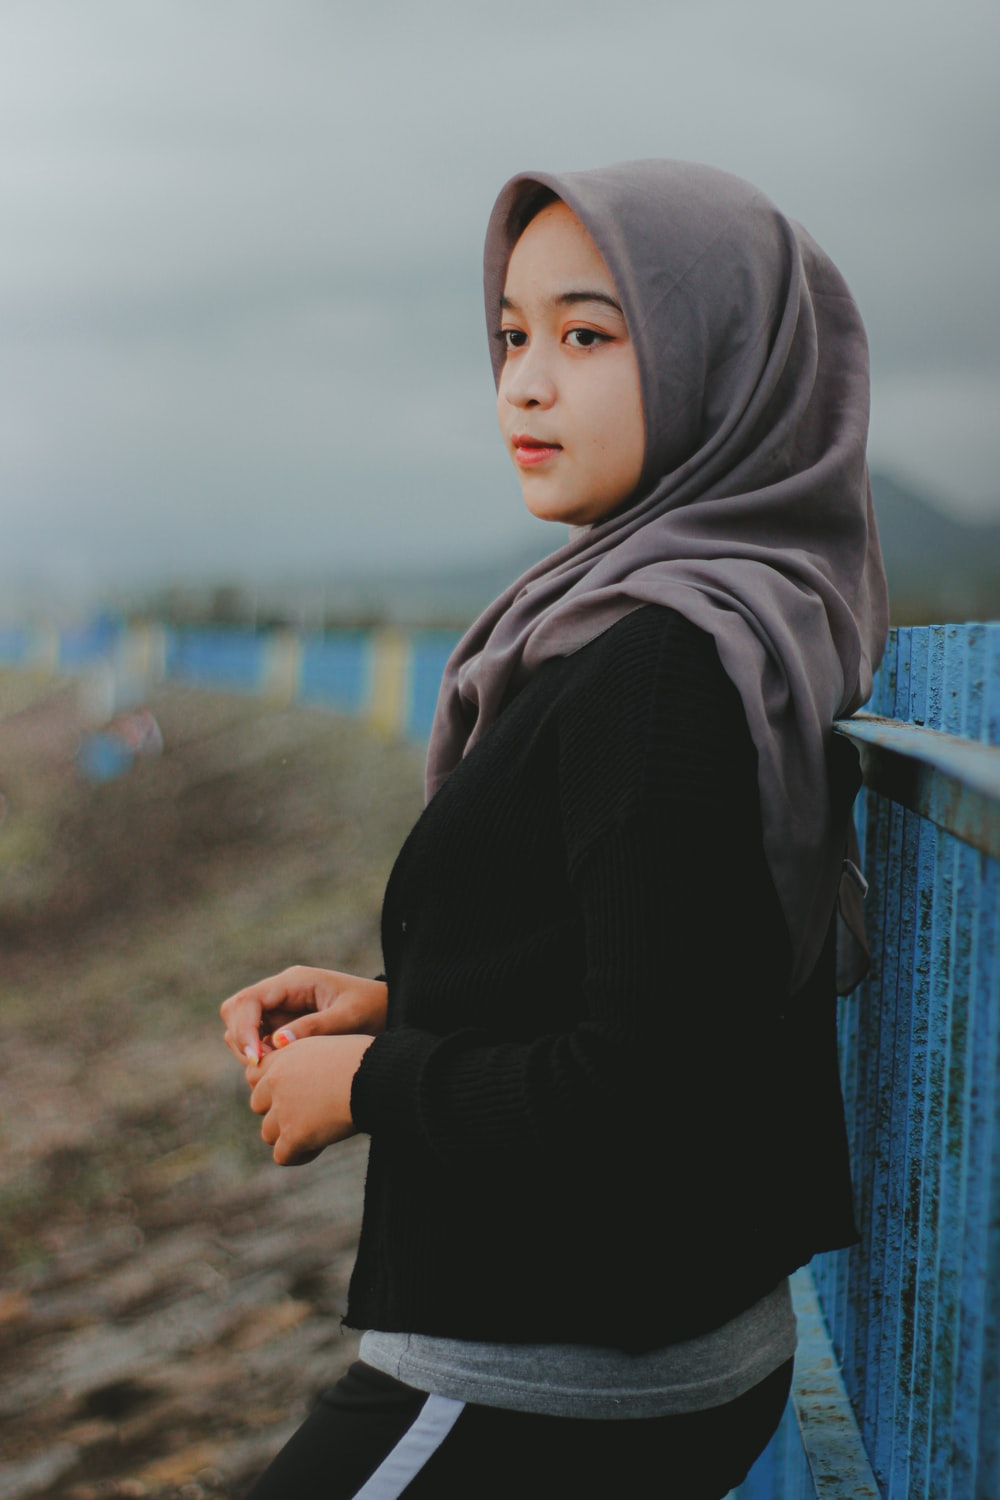 woman in black long sleeve shirt and blue hijab